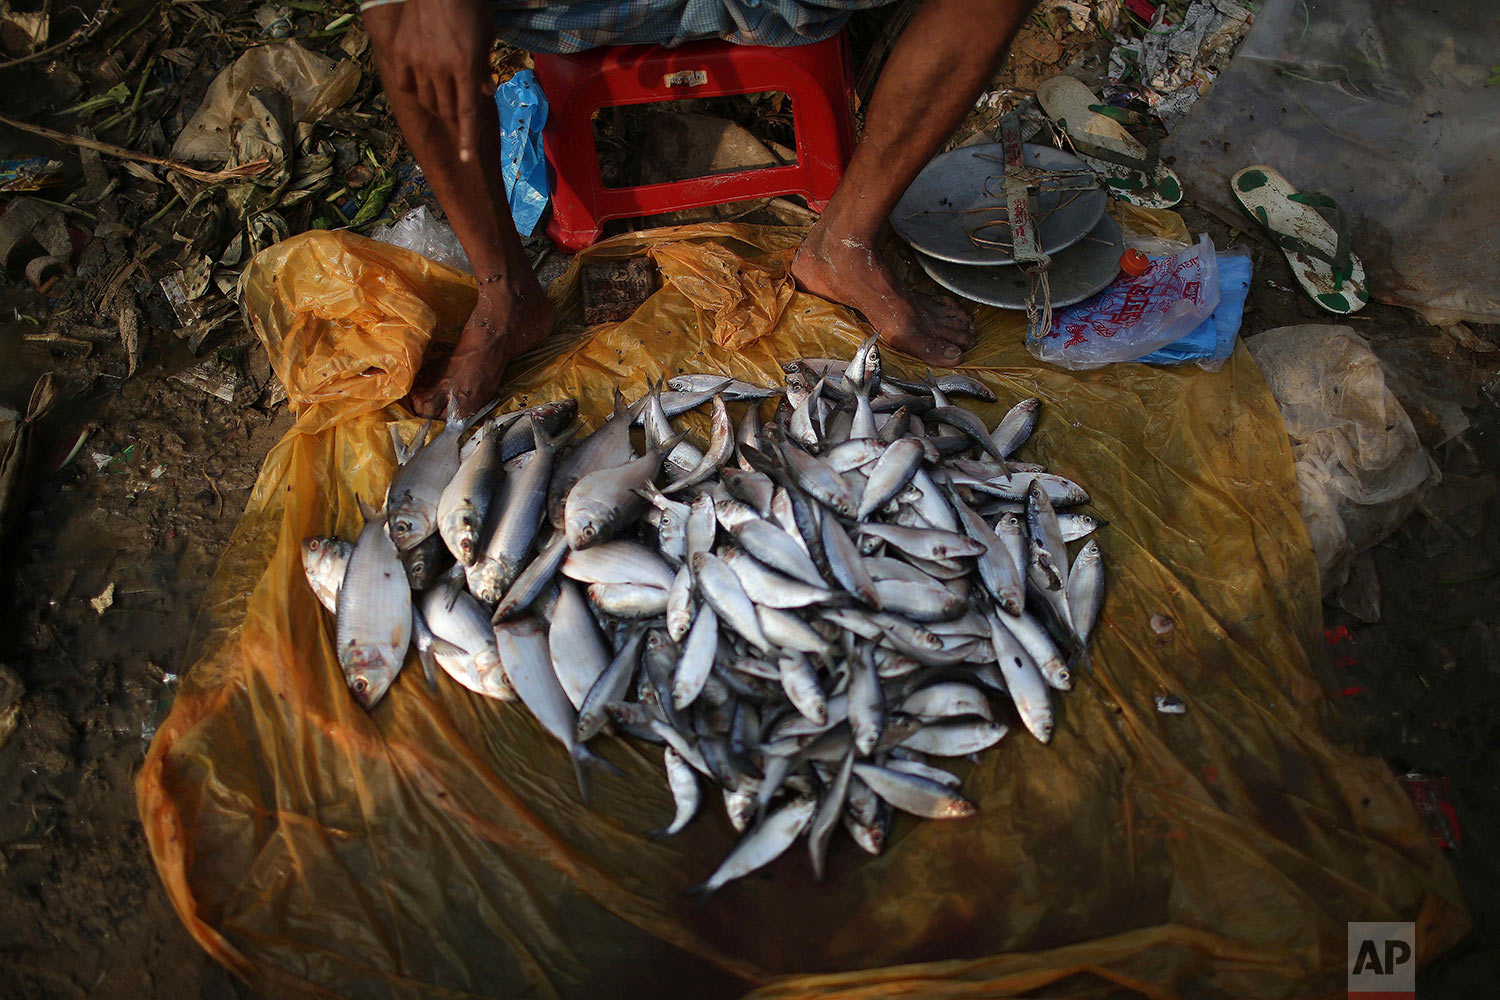 "A Rohingya man sells fish on the muddy grounds of Thaingkhali refugee camp on Wednesday, Nov. 22, 2017, in Bangladesh. Since late August, more than 620,000 Rohingya have fled Myanmar's Rakhine state into neighboring Bangladesh, seeking safety from what the military described as ""clearance operations."" The United Nations and others have said the military's actions appeared to be a campaign of ""ethnic cleansing,"" using acts of violence and intimidation and burning down homes to force the Rohingya to leave their communities. (AP Photo/Wong Maye-E)"